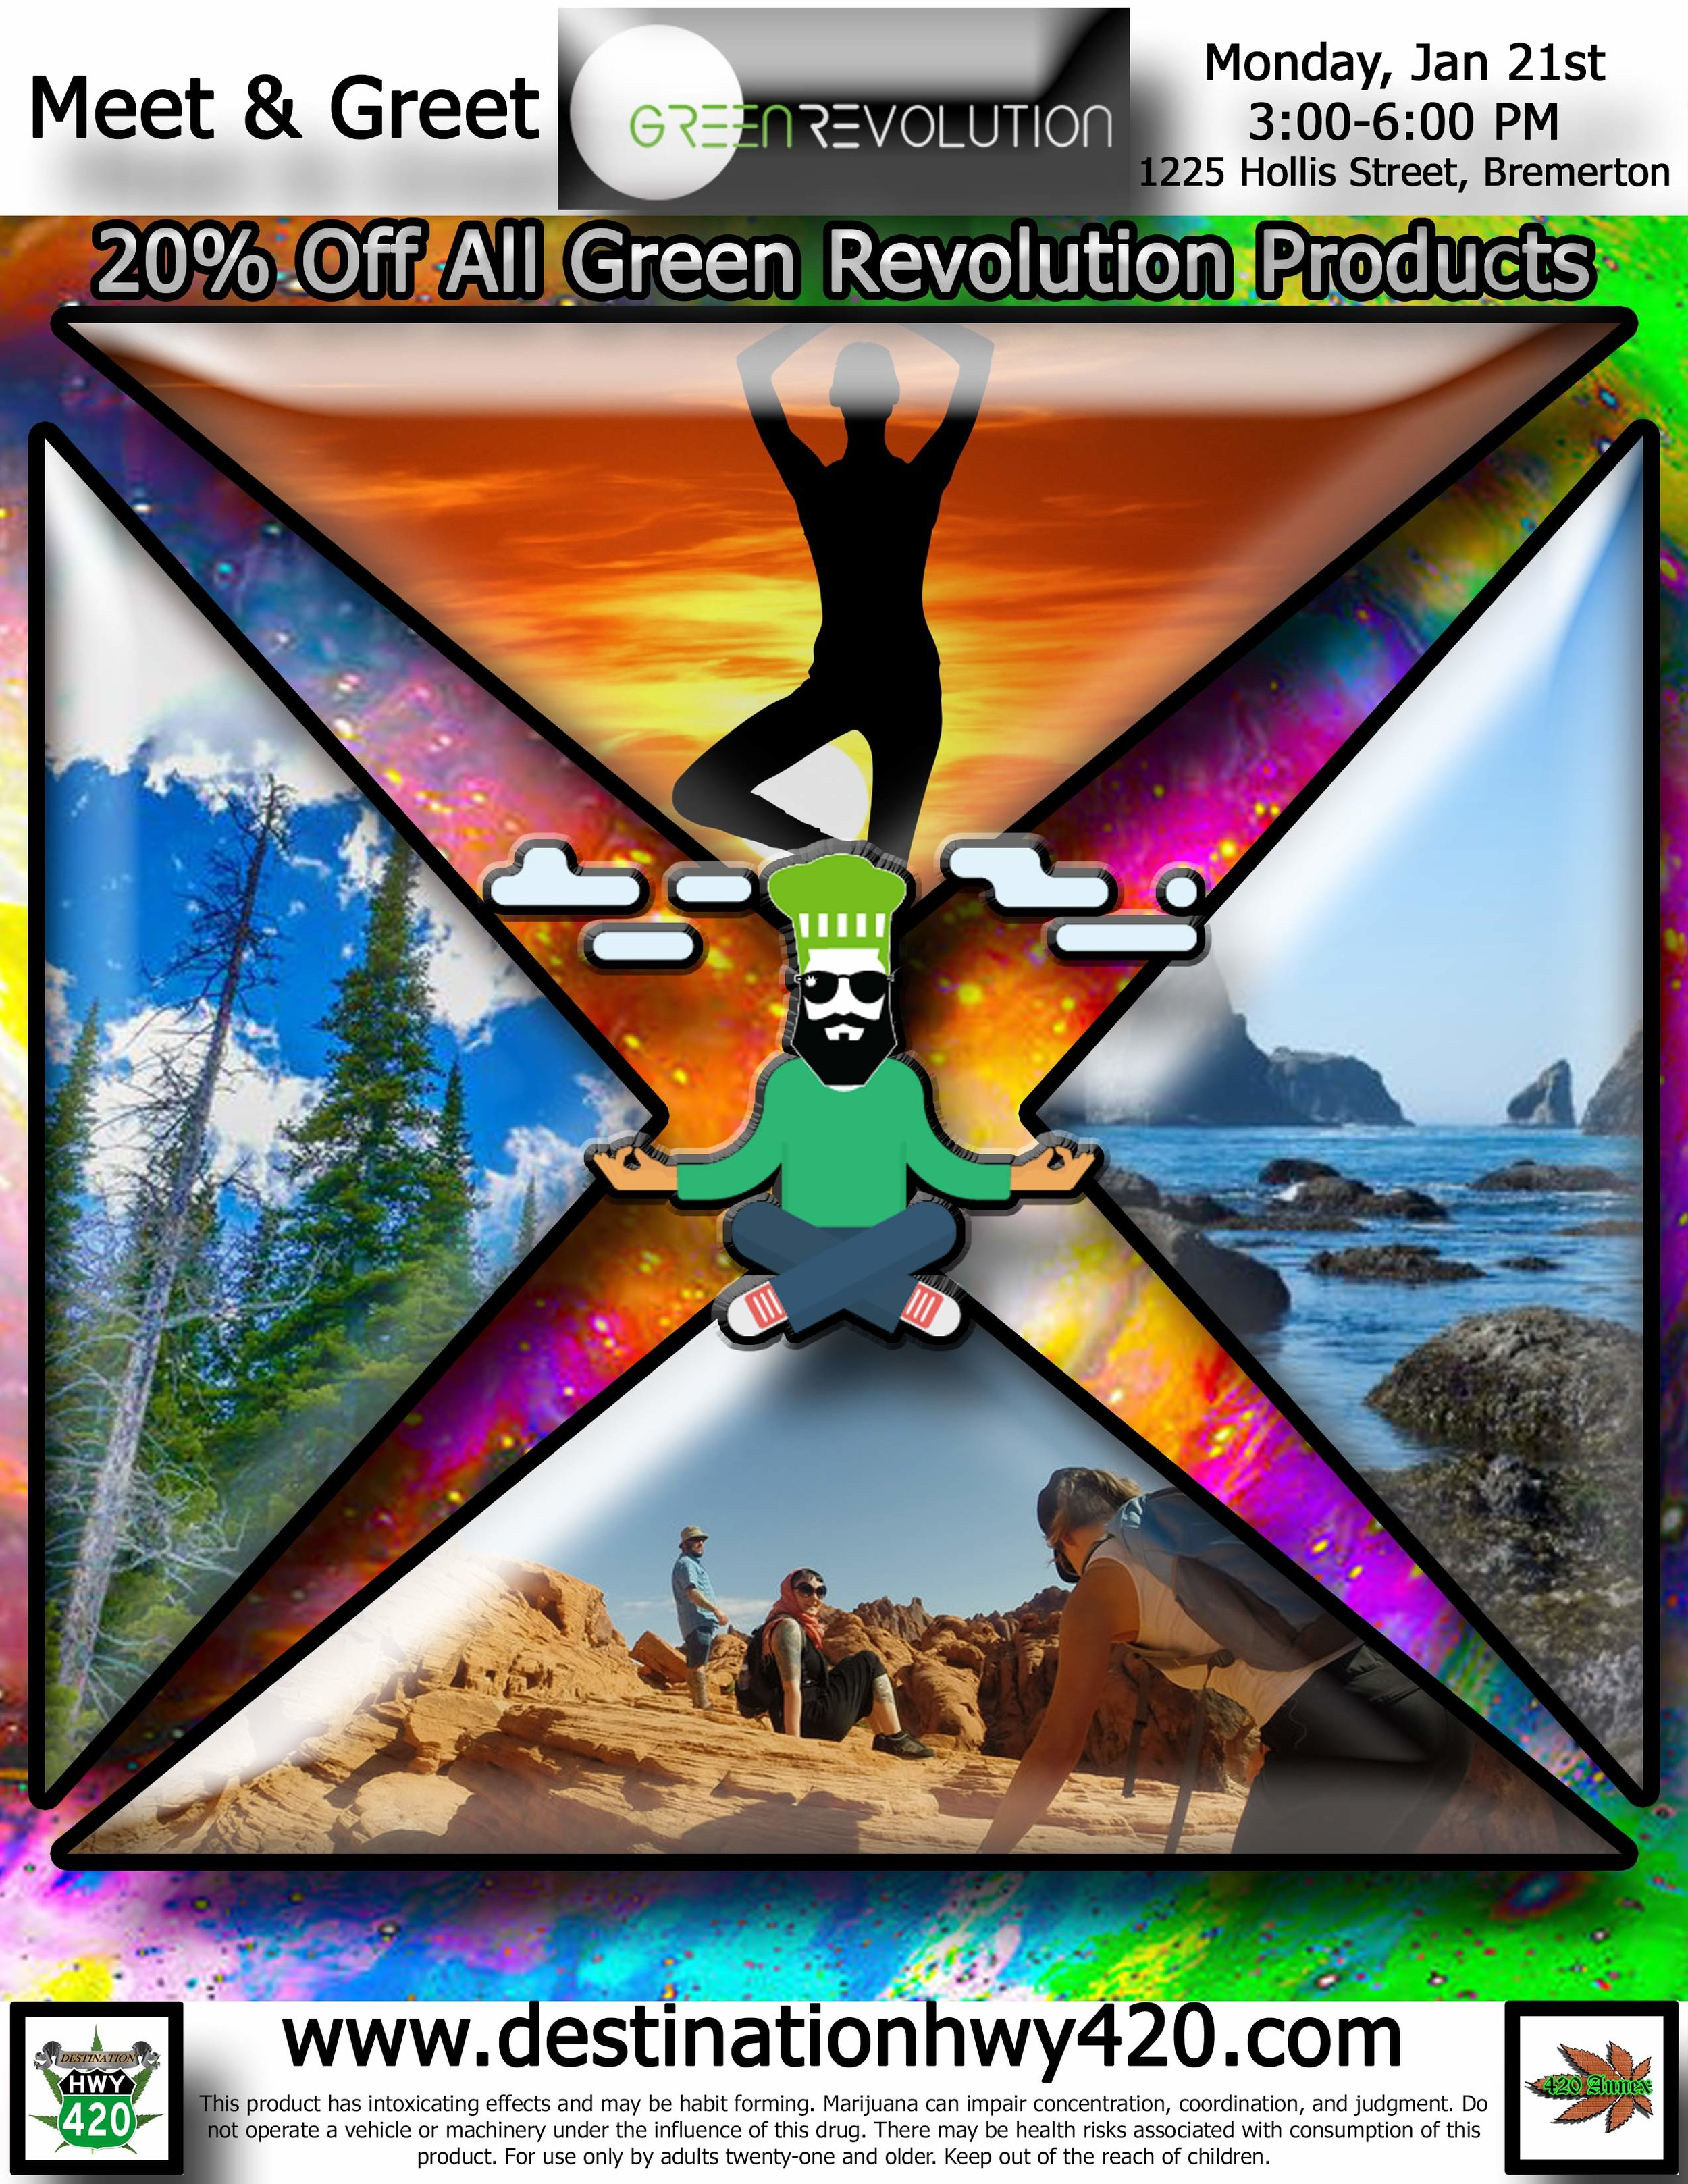 Green Revolution cannabis products are available at Destination HWY 420 in East Bremerton. The scientific precision practiced by this company is evident in their products. Each product comes with tons of helpful information such as dosage suggestions, expected effects, ingredients, and more.